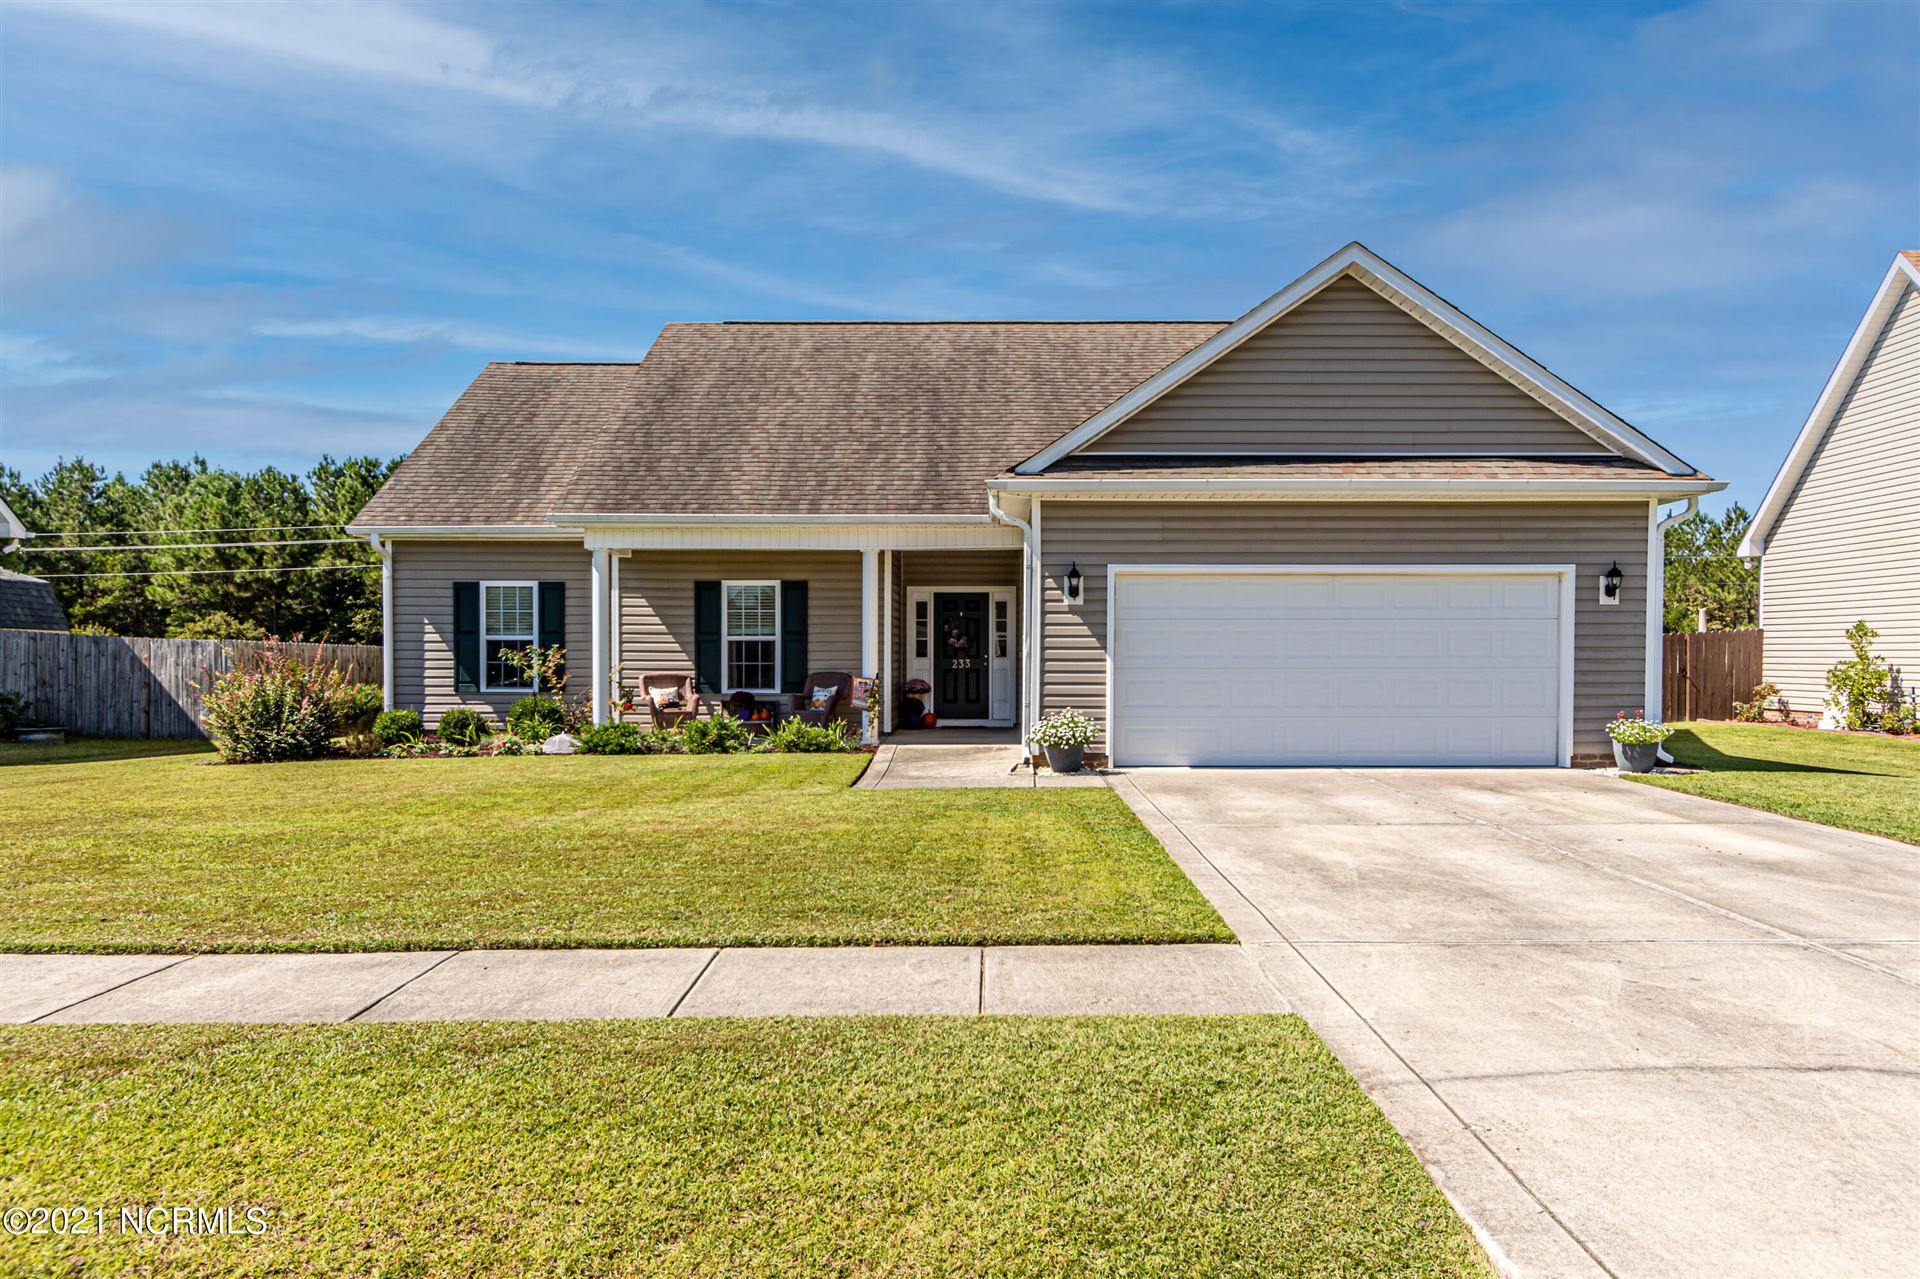 Photo of 233 Silver Hills Drive, Jacksonville, NC 28546 (MLS # 100292683)